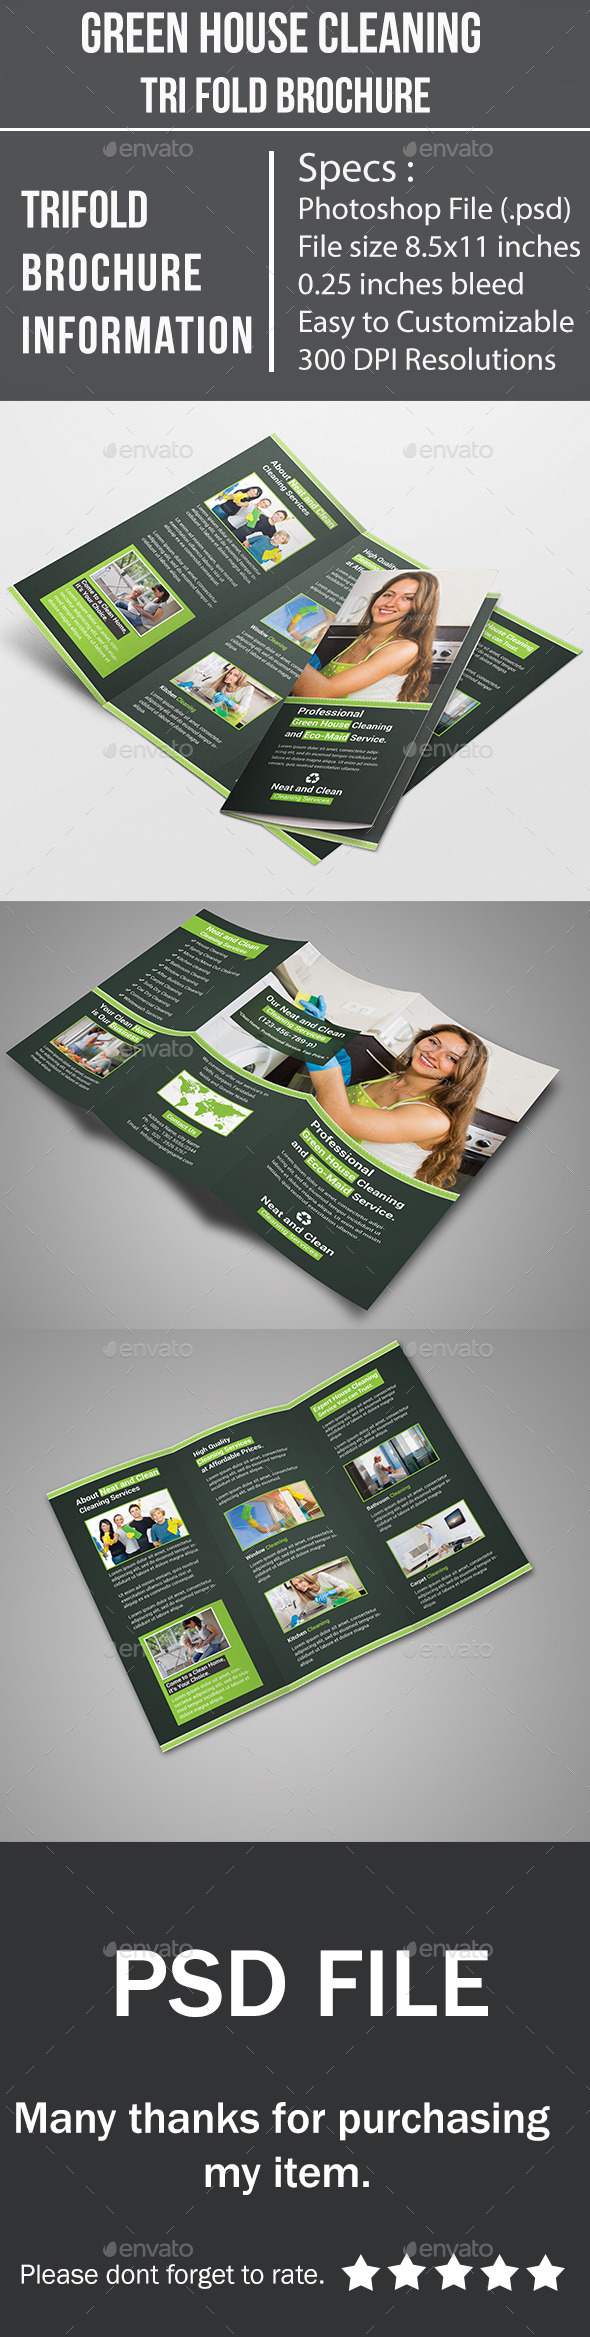 Green House Cleaning Tri Fold Brochure - Corporate Brochures